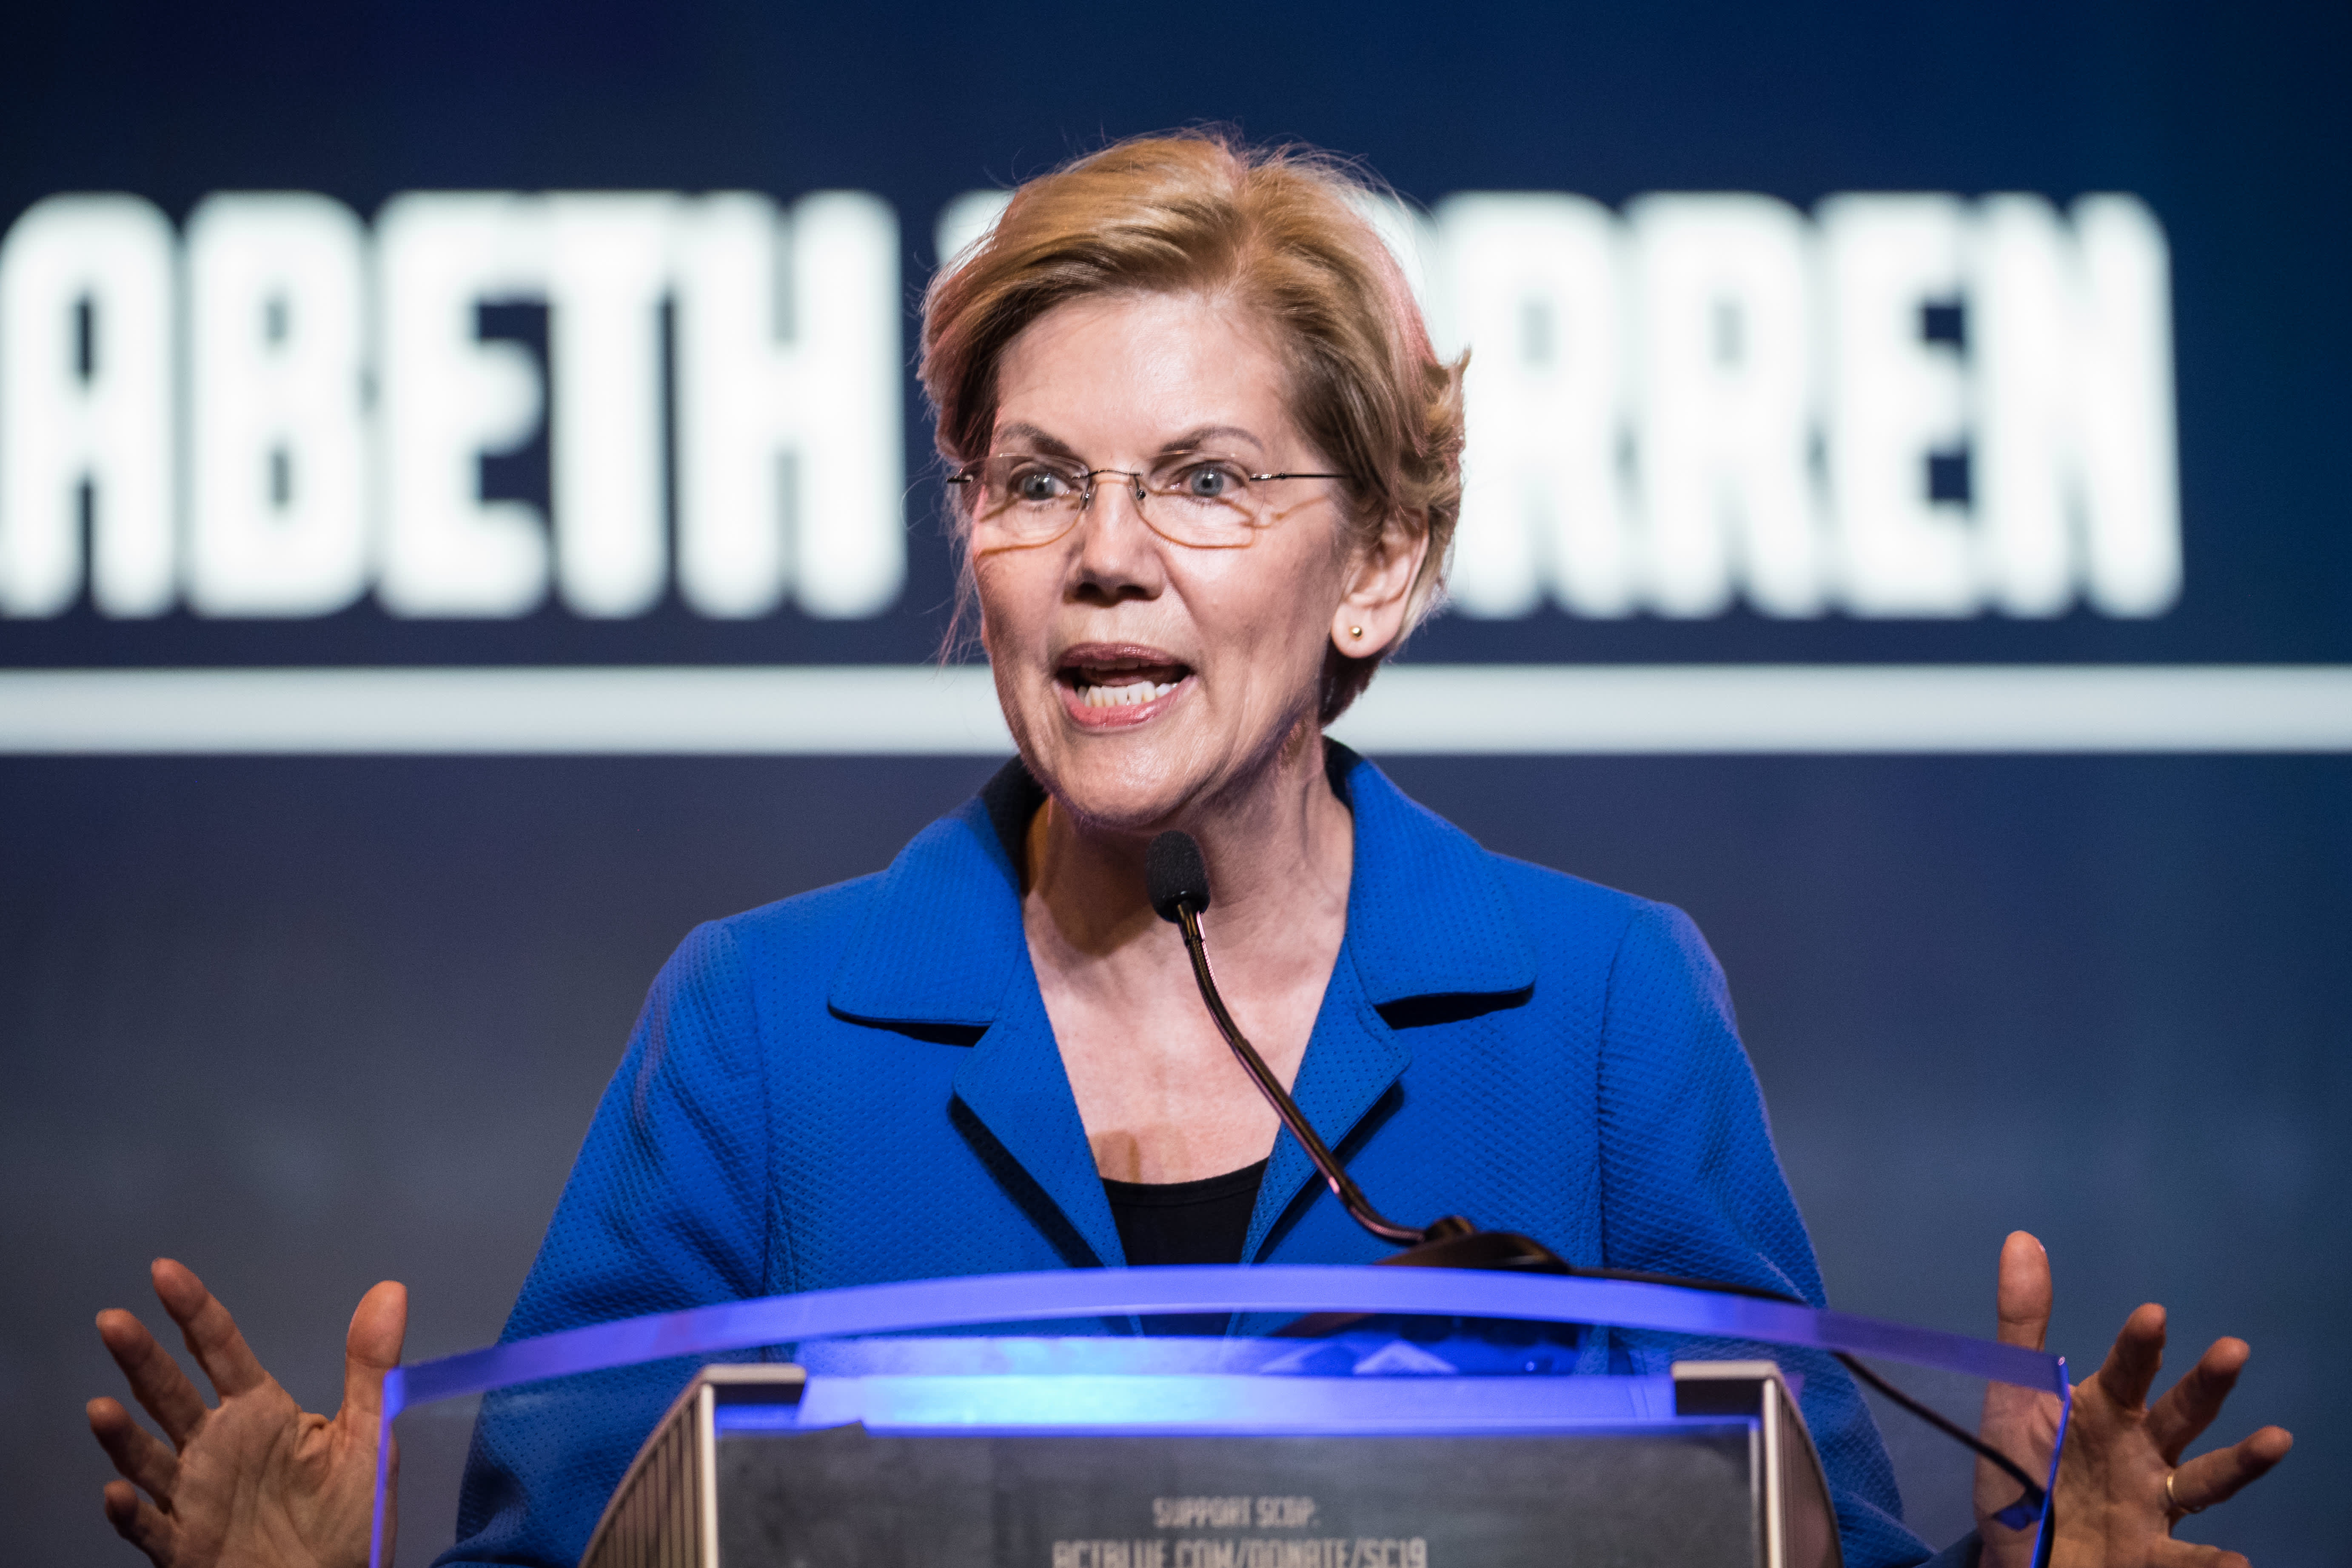 Elizabeth Warren proposes sweeping increase in Social Security benefits, financed by wealth taxes